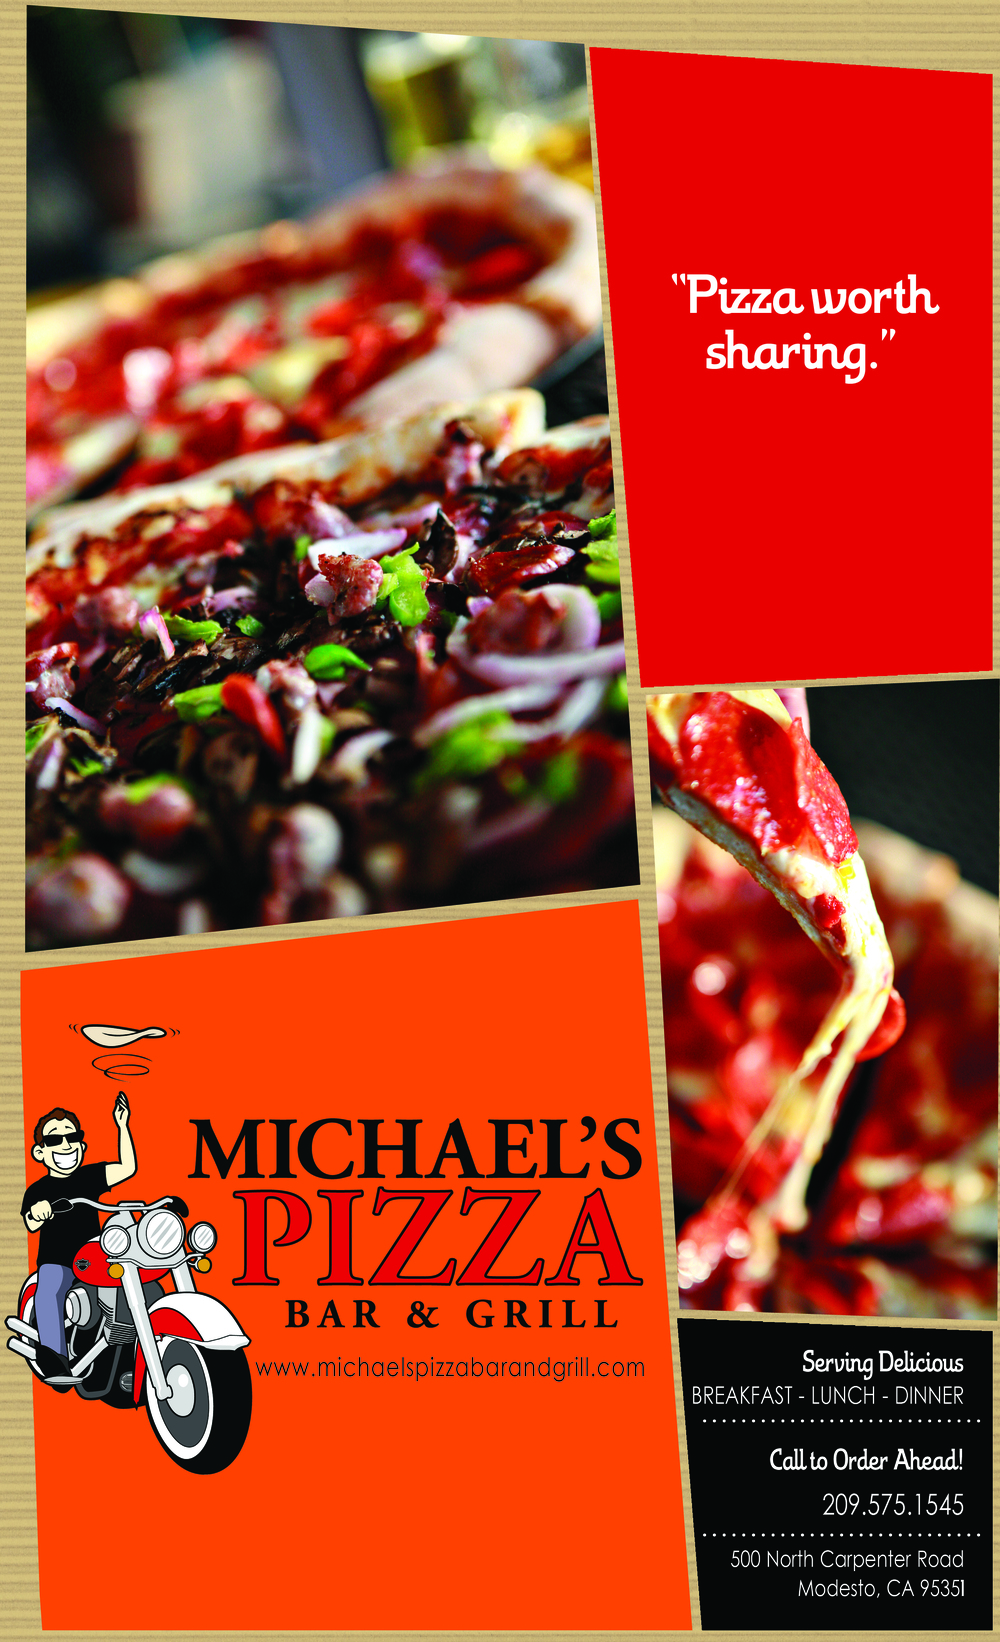 Michaels Pizza.jpg